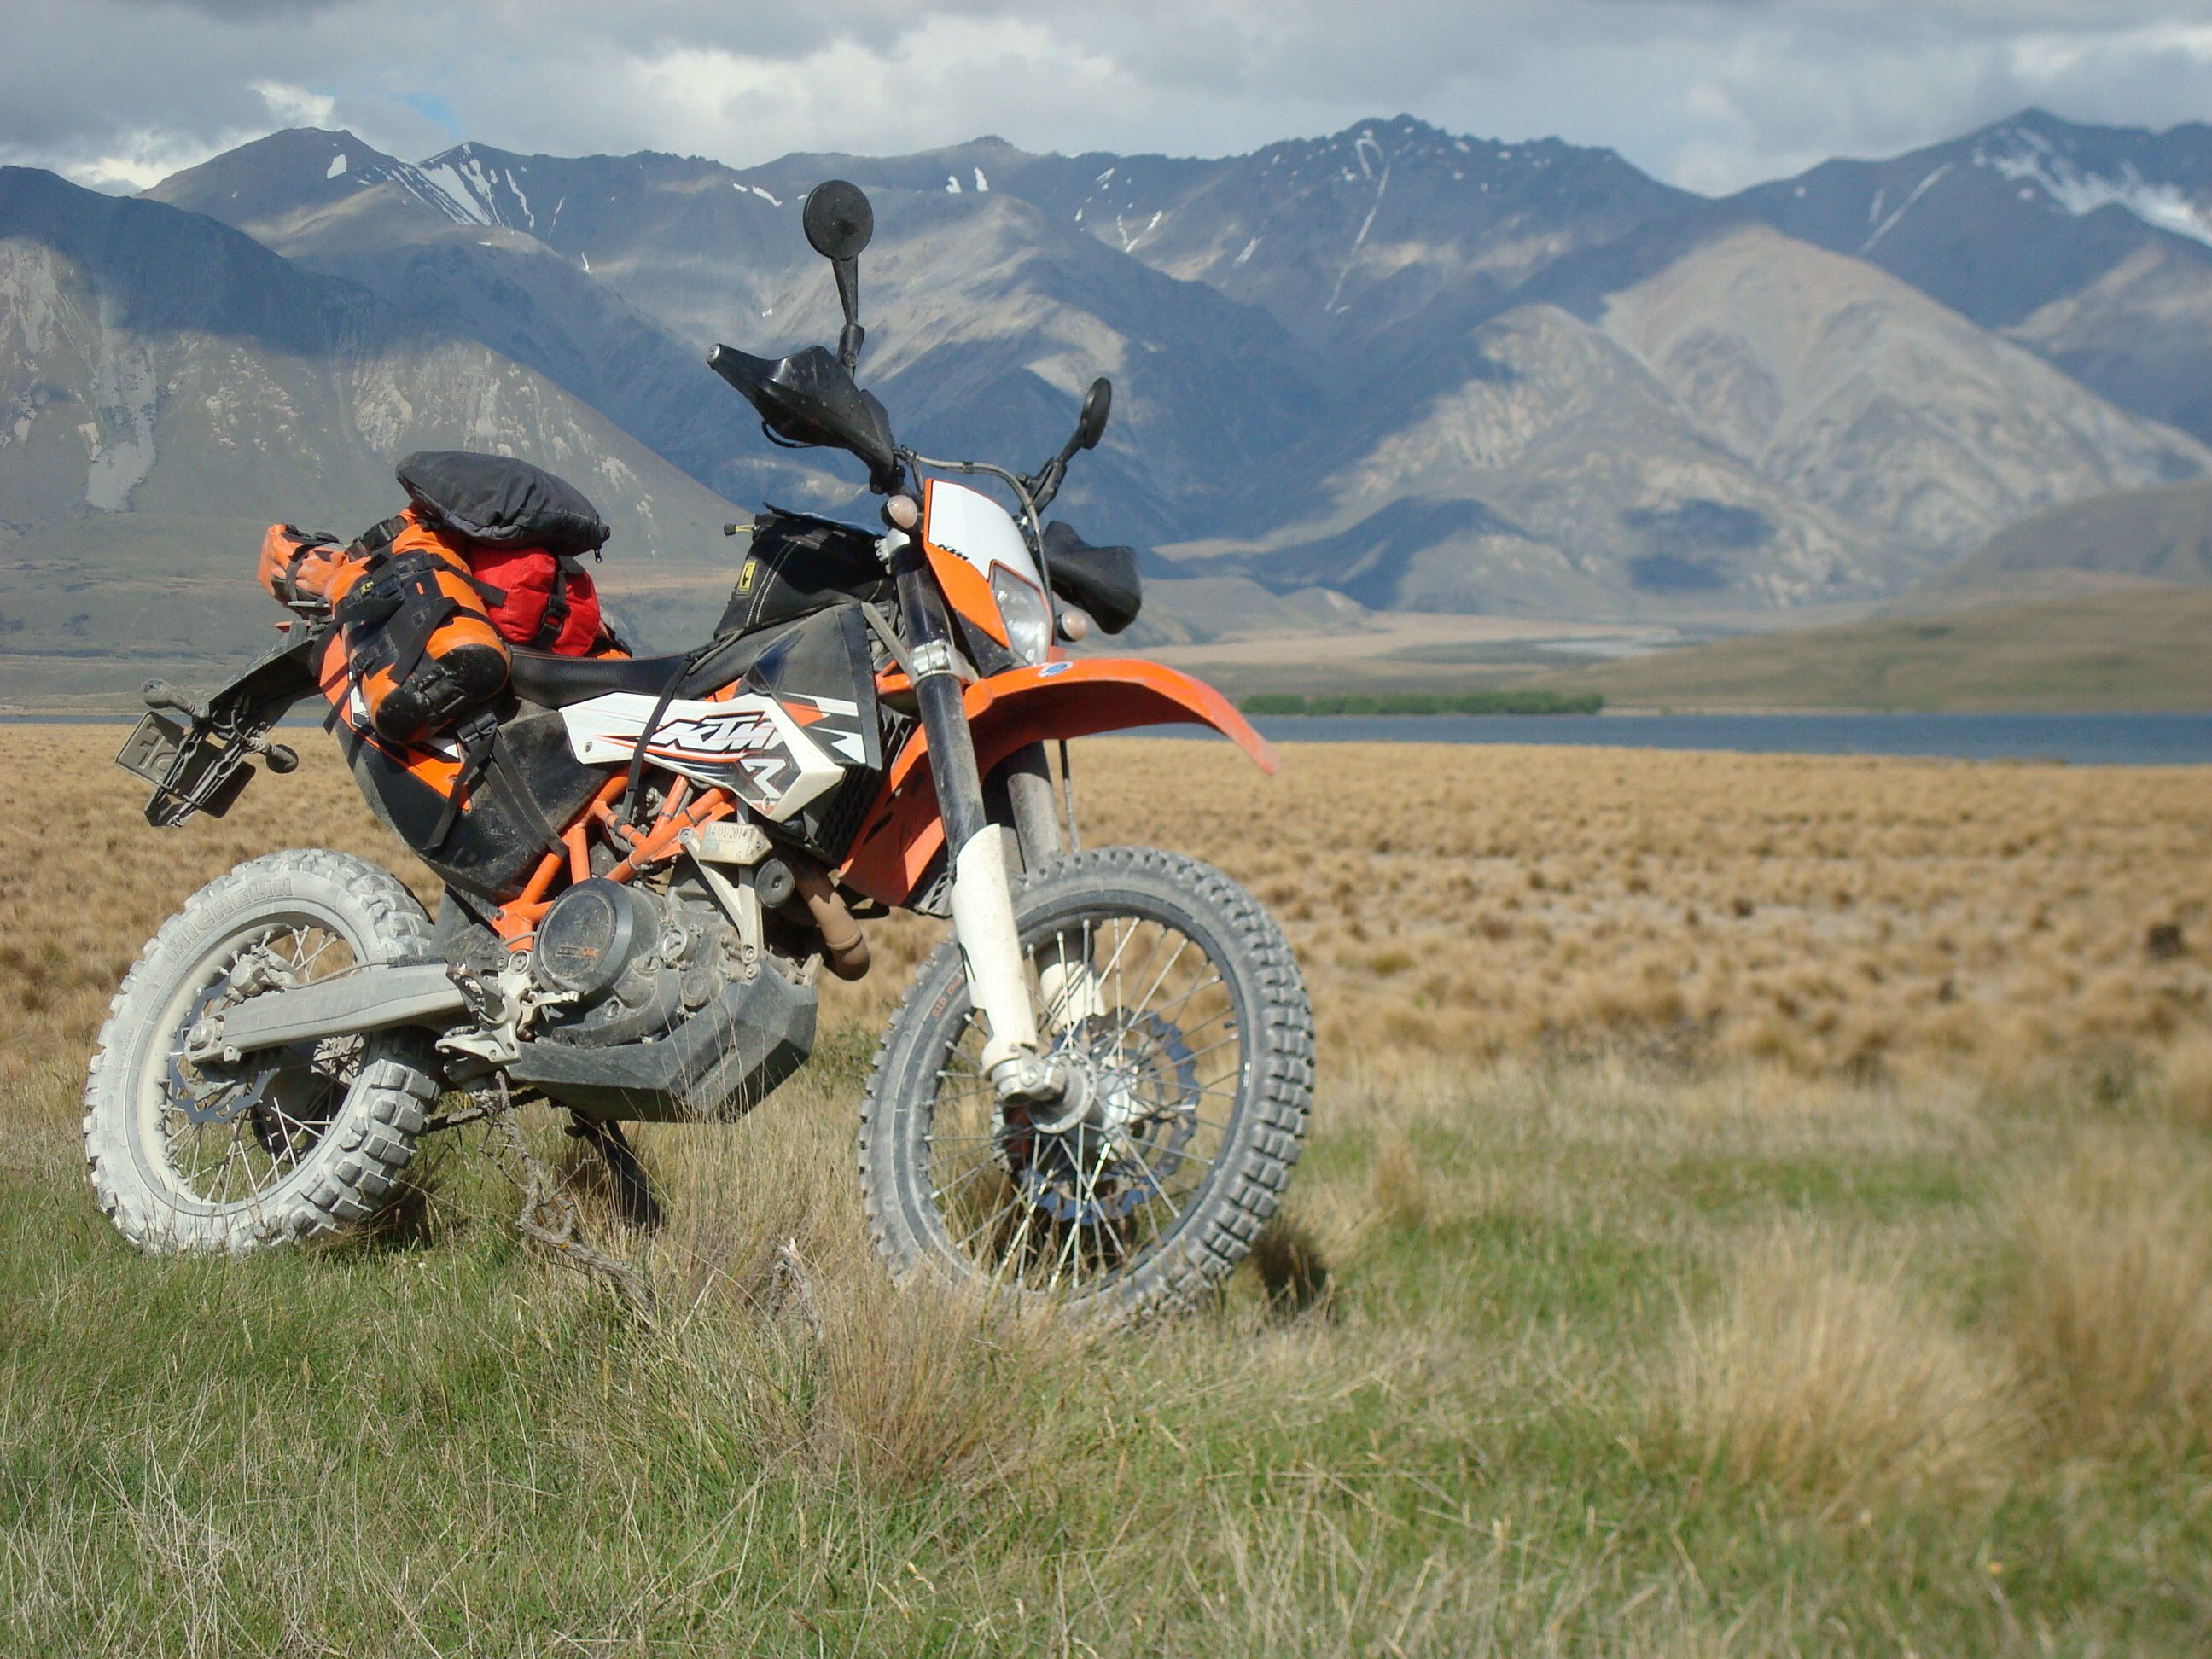 4c1d9a91ba7 KTM 690 Enduro R - I m going to get one of these someday and ride it around  the world.